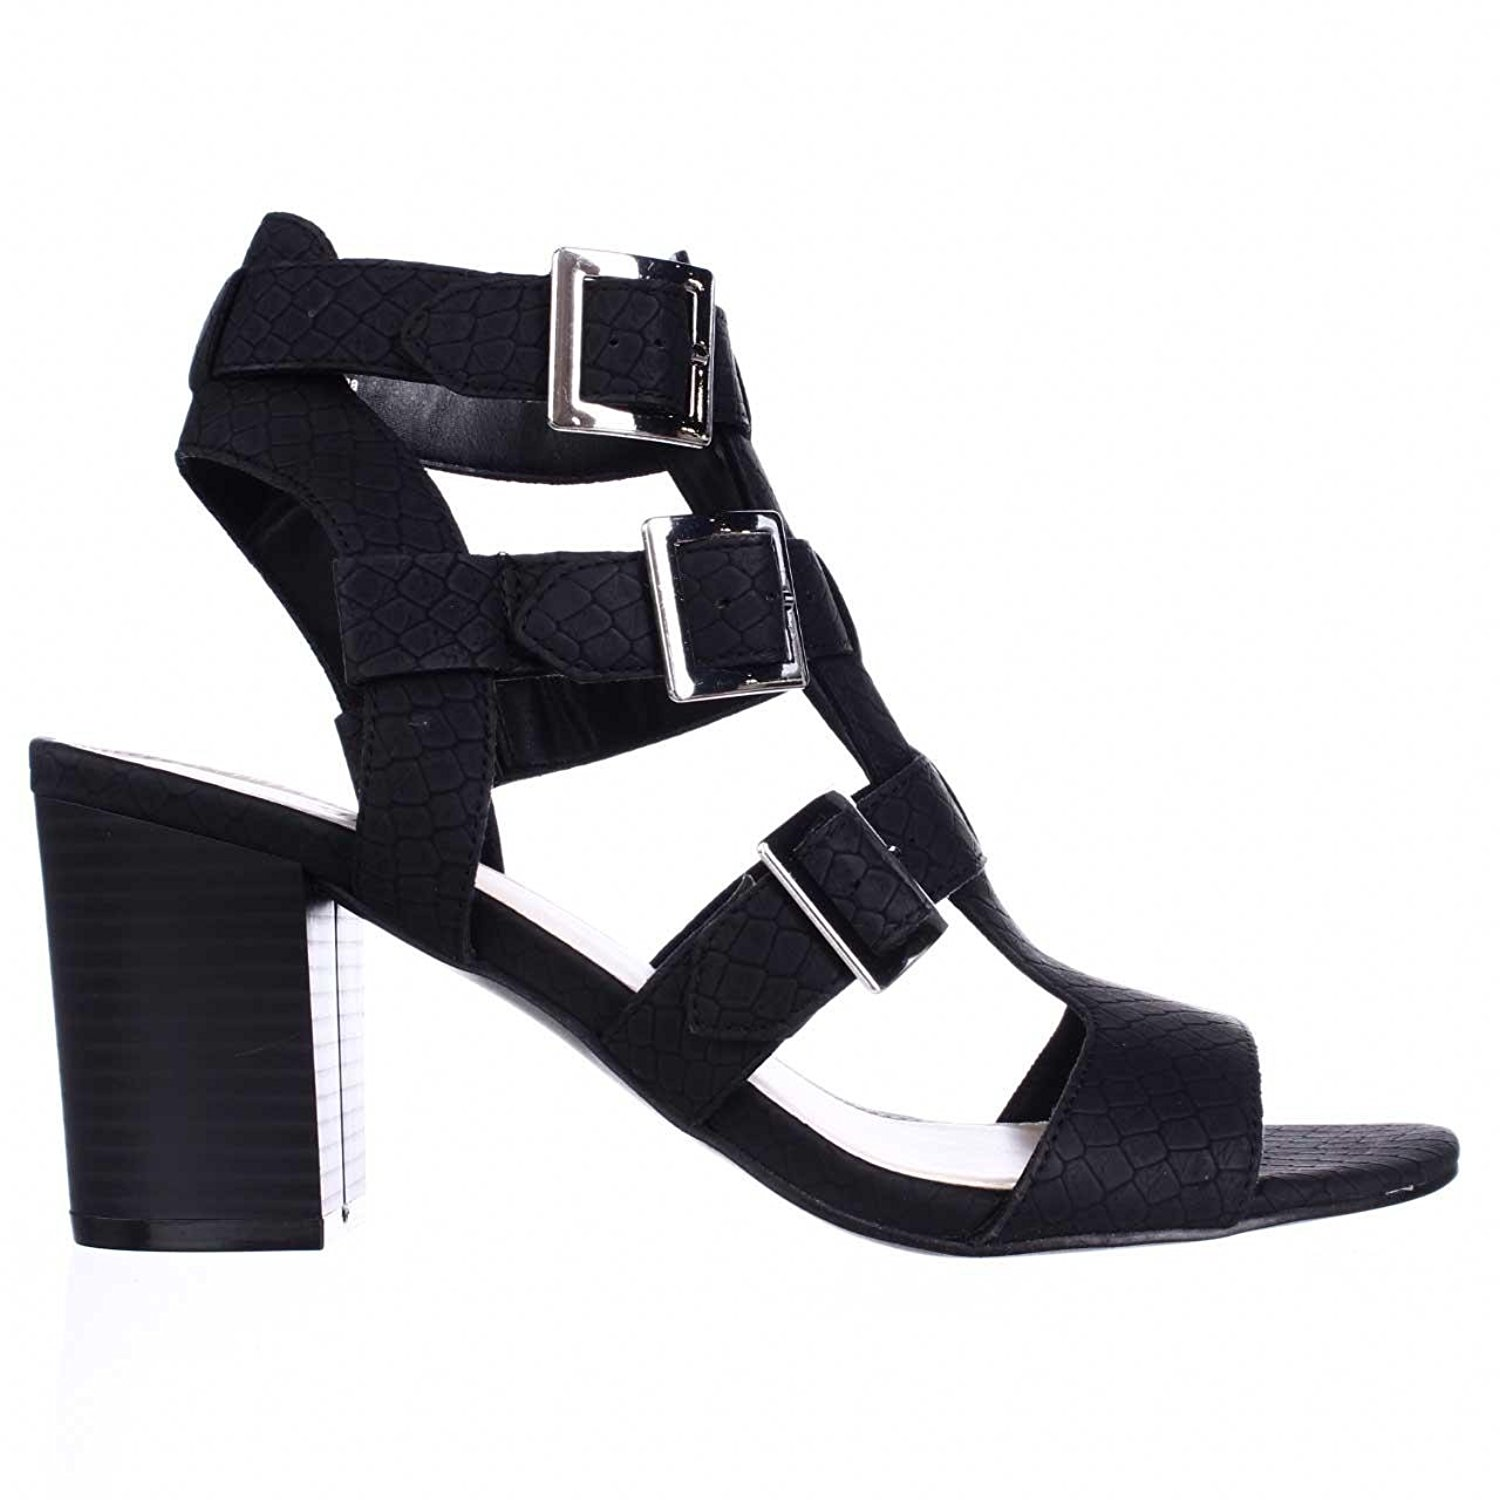 Bar-III-Womens-Kara-Open-Toe-Casual-Strappy-Sandals